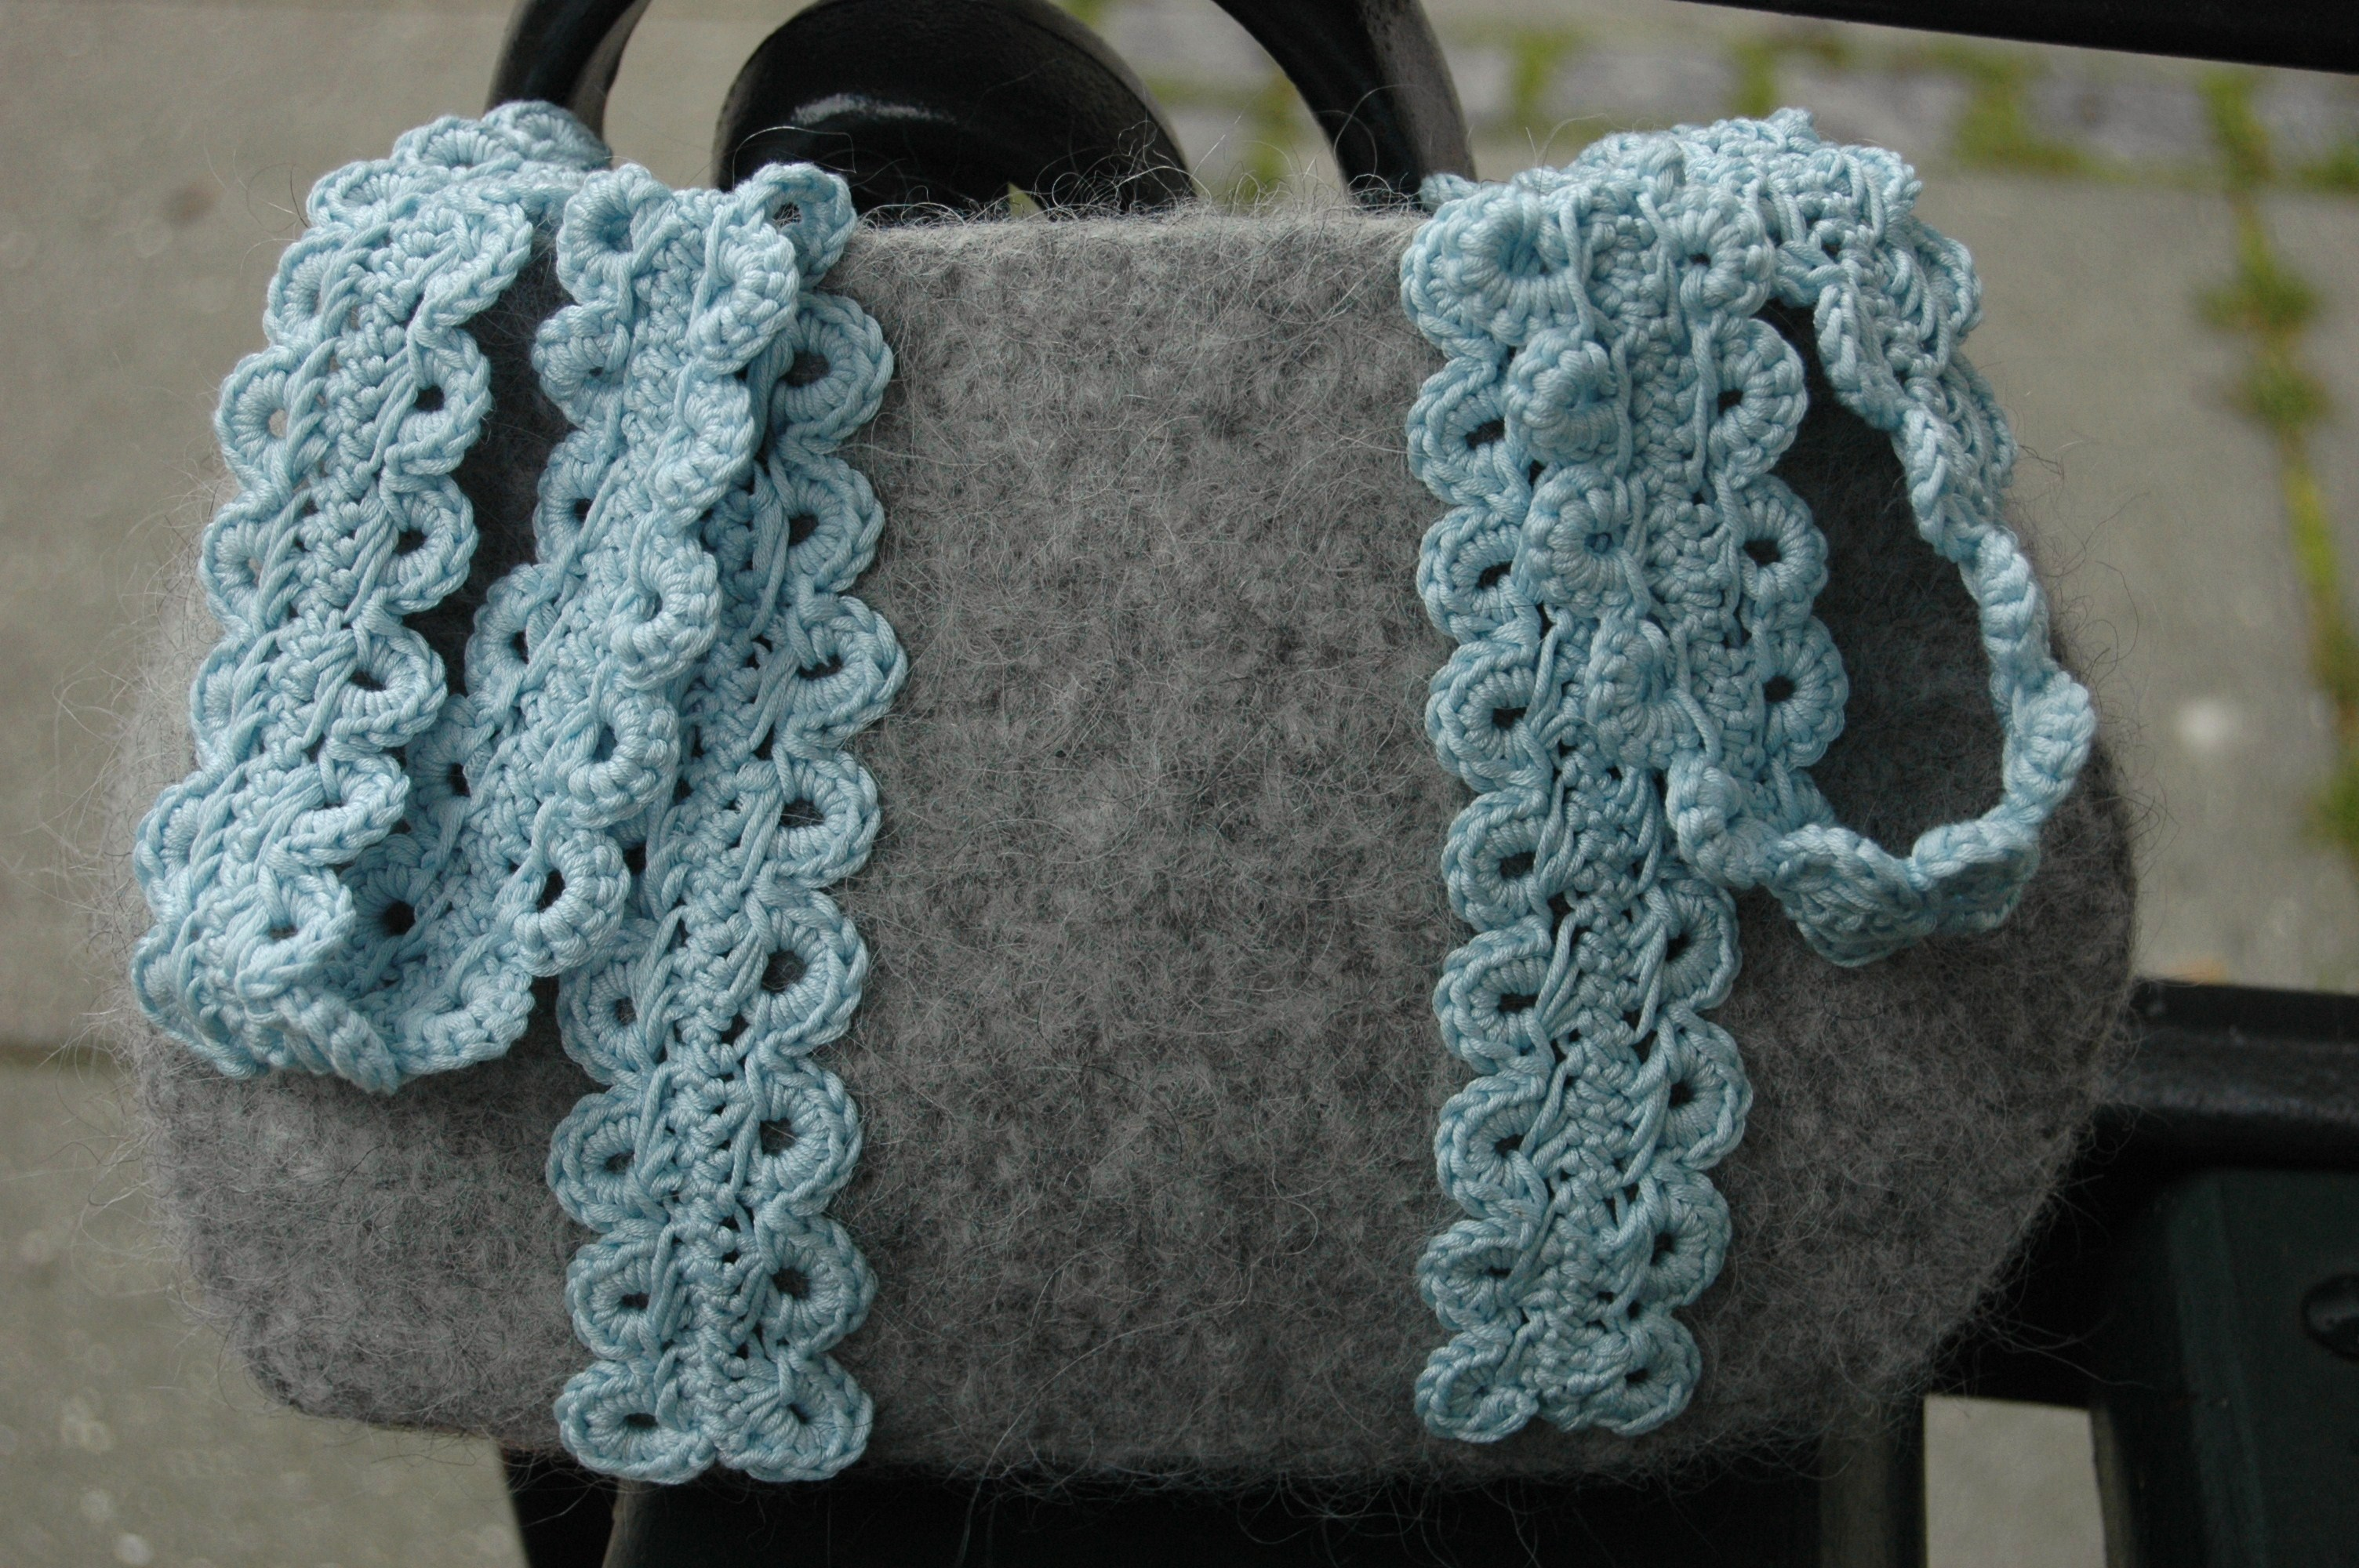 Free Crochet Pattern Bag : Free Felted Crochet Bag Pattern: - Your Own Purse Making Guide